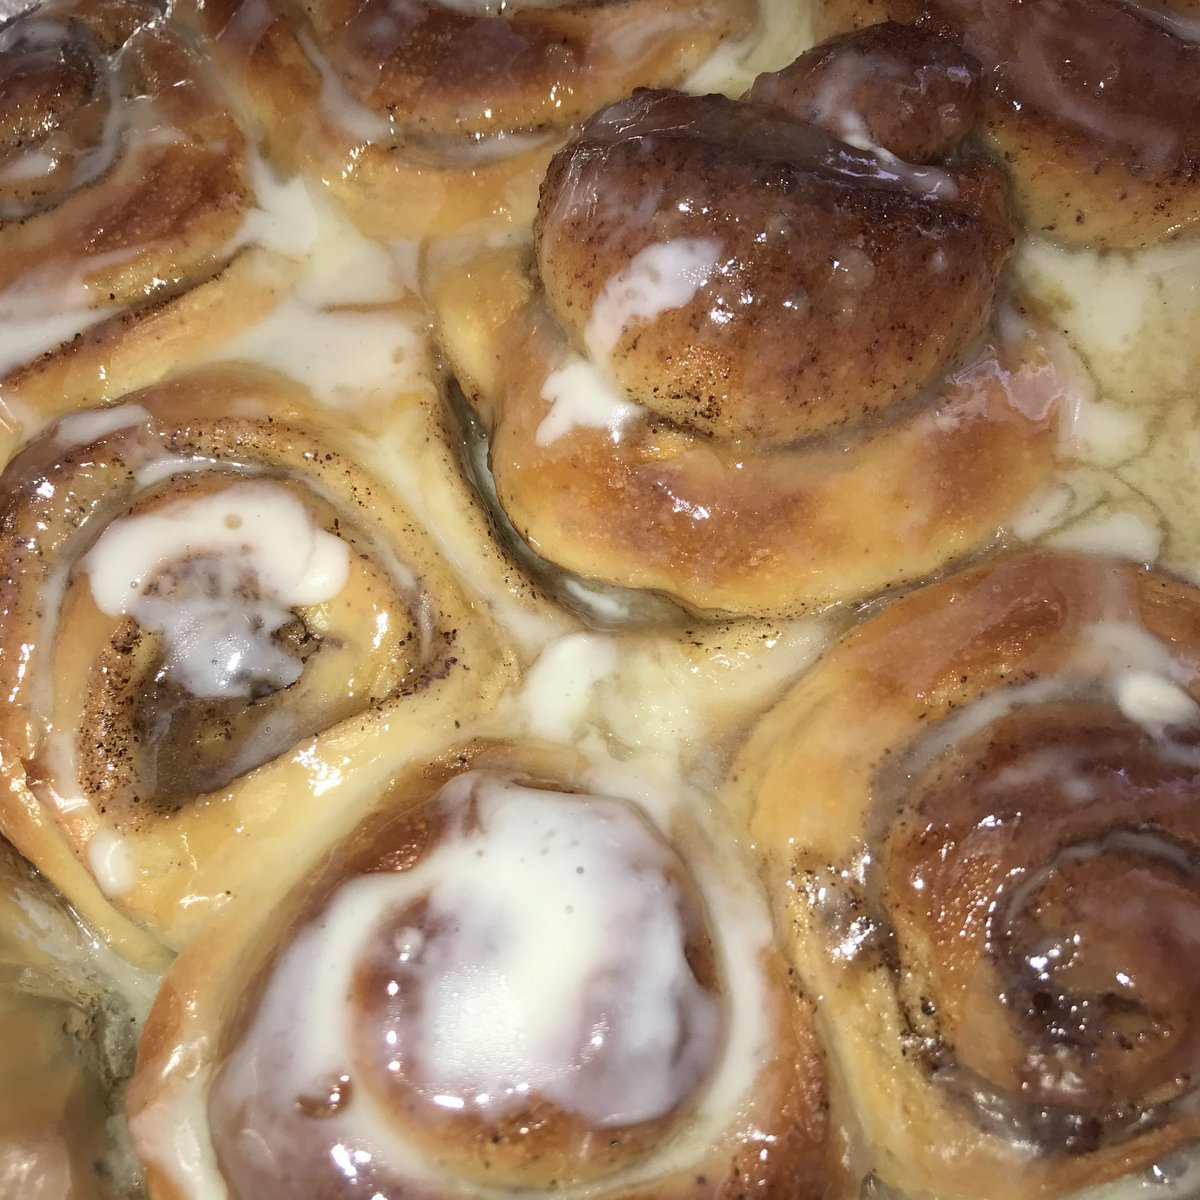 We're giving away a pack each of our cinnamon rolls and apple crumble pie!!! Rules in my next tweet! Please RT <br>http://pic.twitter.com/AD2d6OliuW